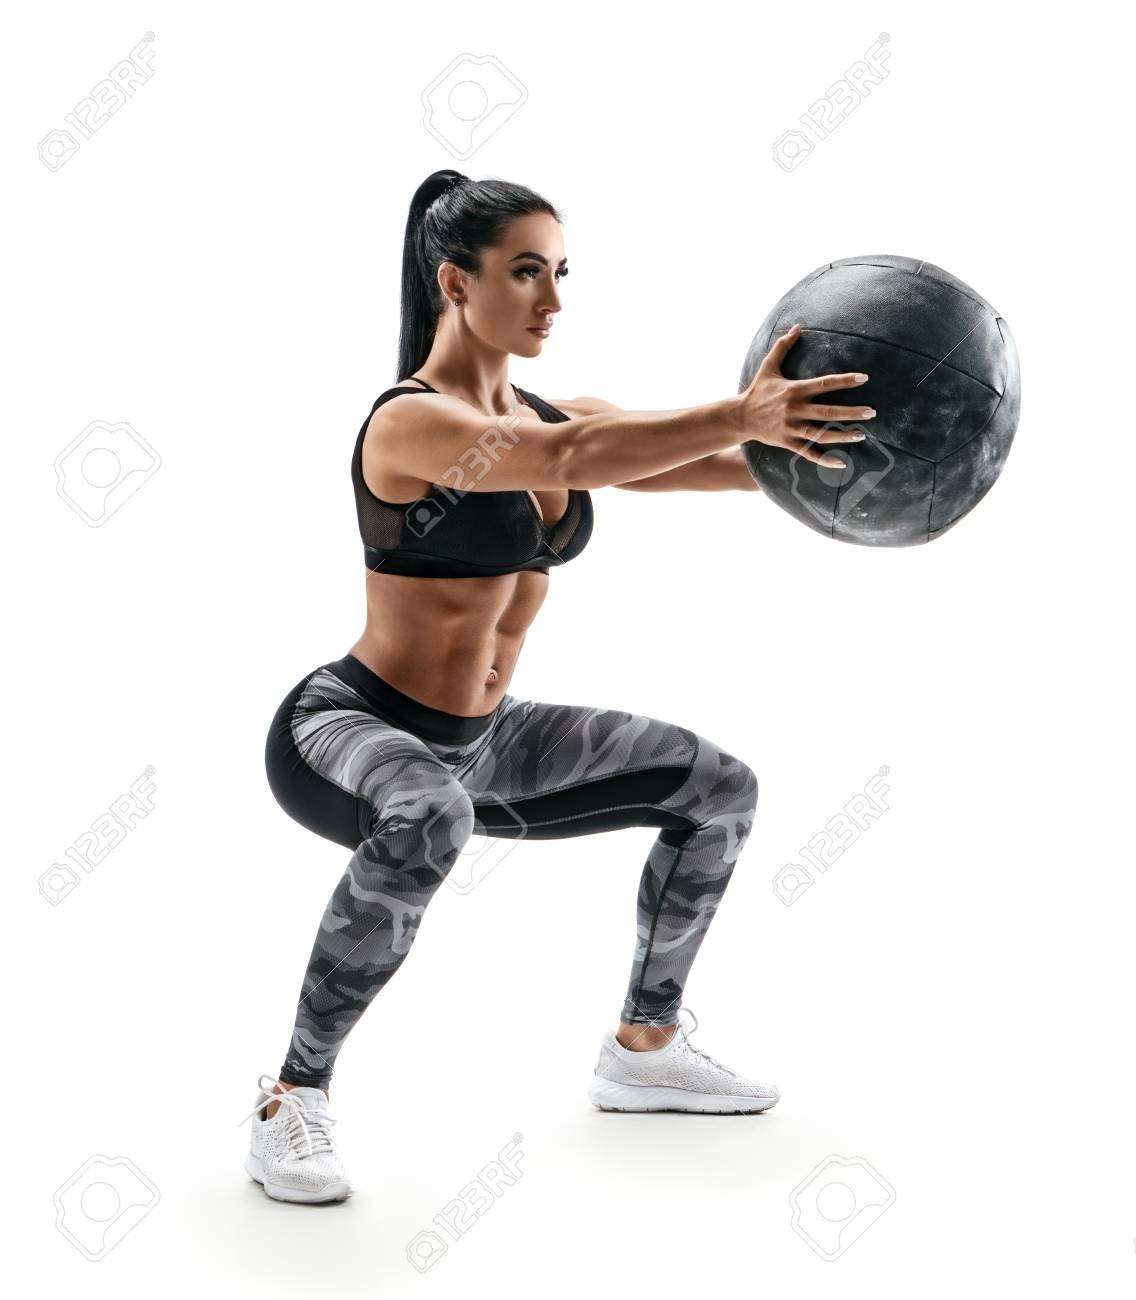 Fitness: If you want to be fit like Wonder Woman, here is her fitness routine